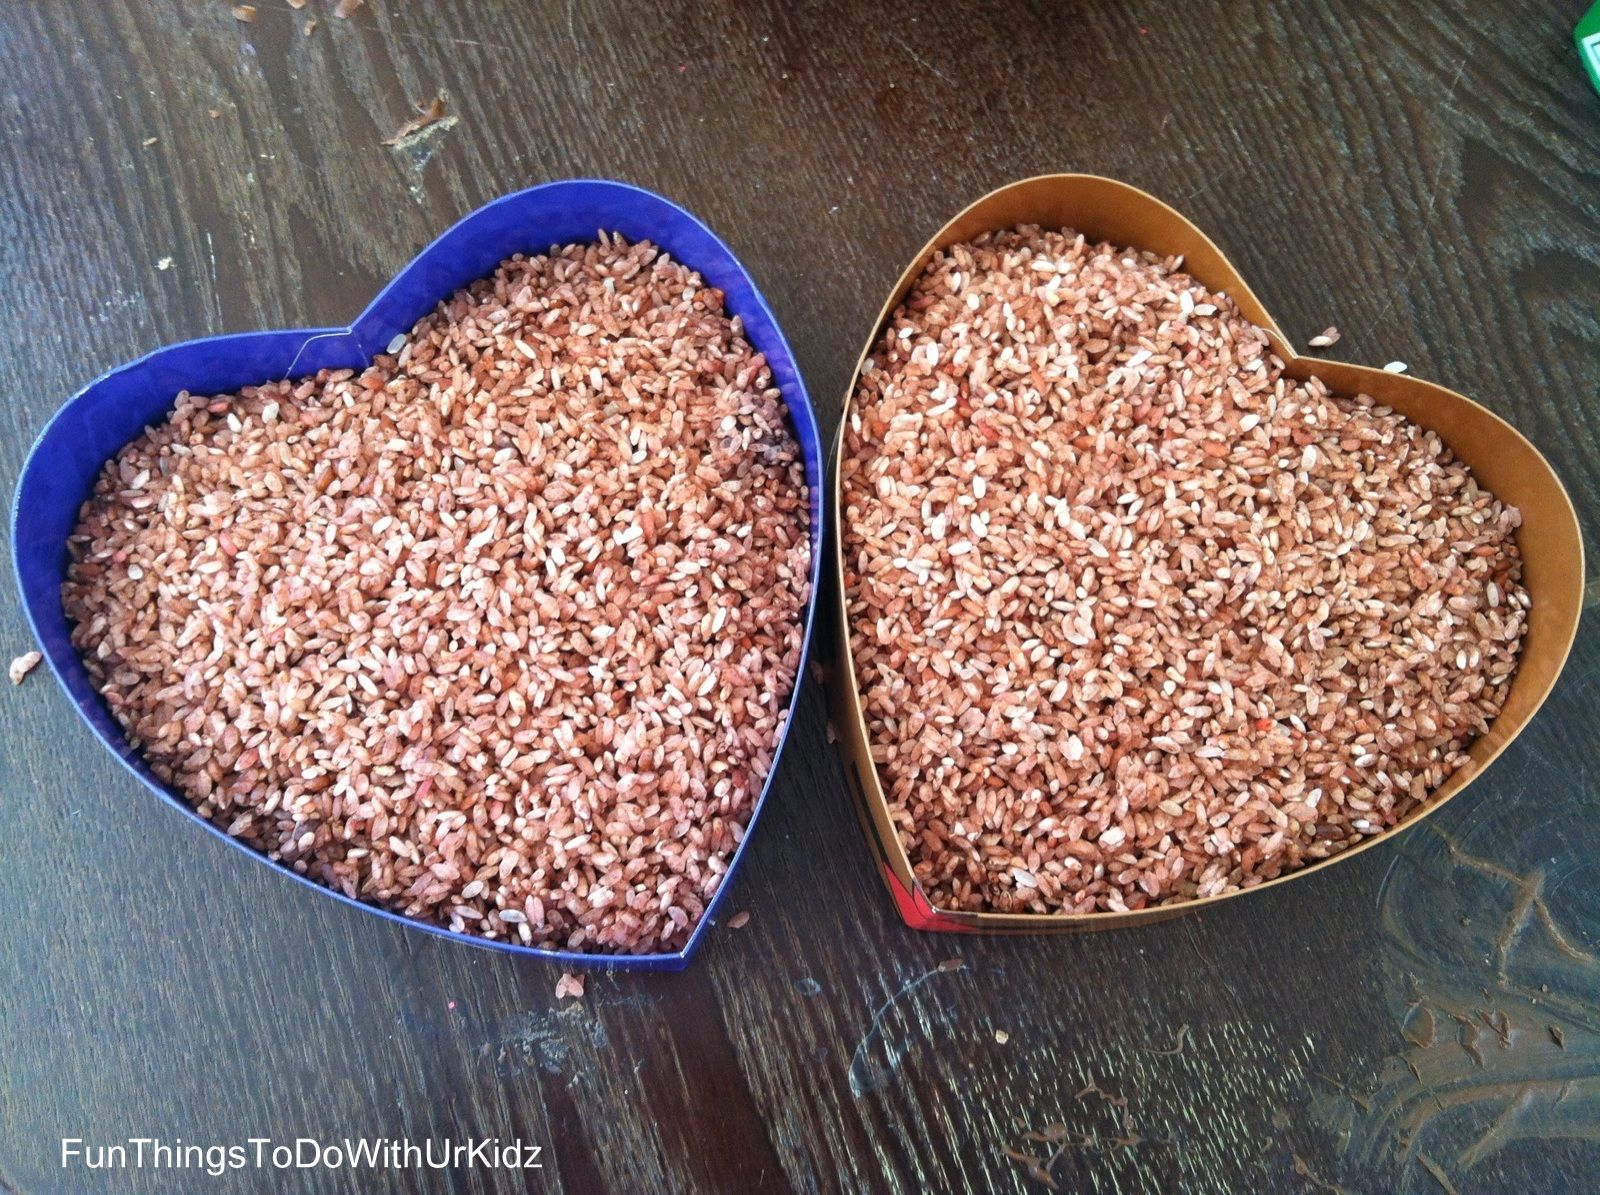 Chocolate Scented Sensory Rice To Make ~ Mix Some Dry Rice With